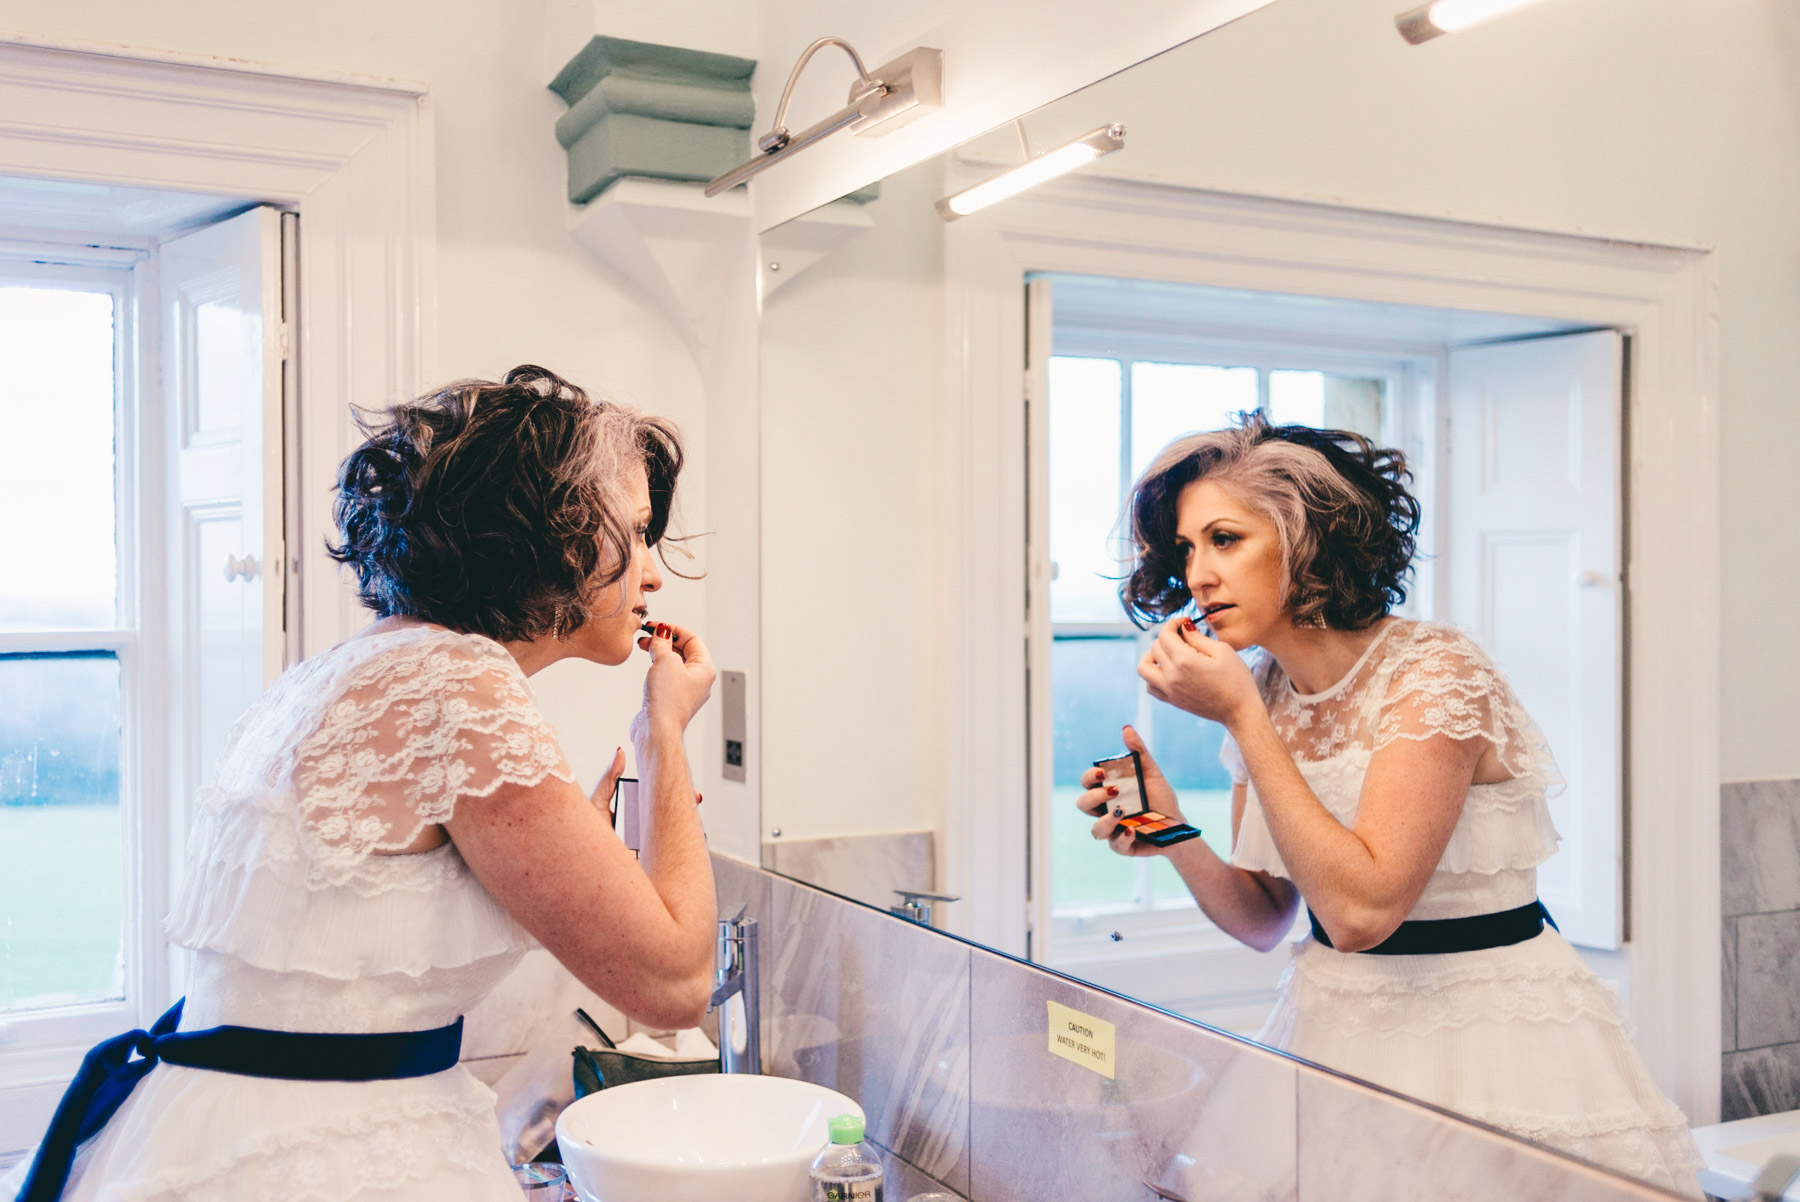 Bride applies own make-up in mirror